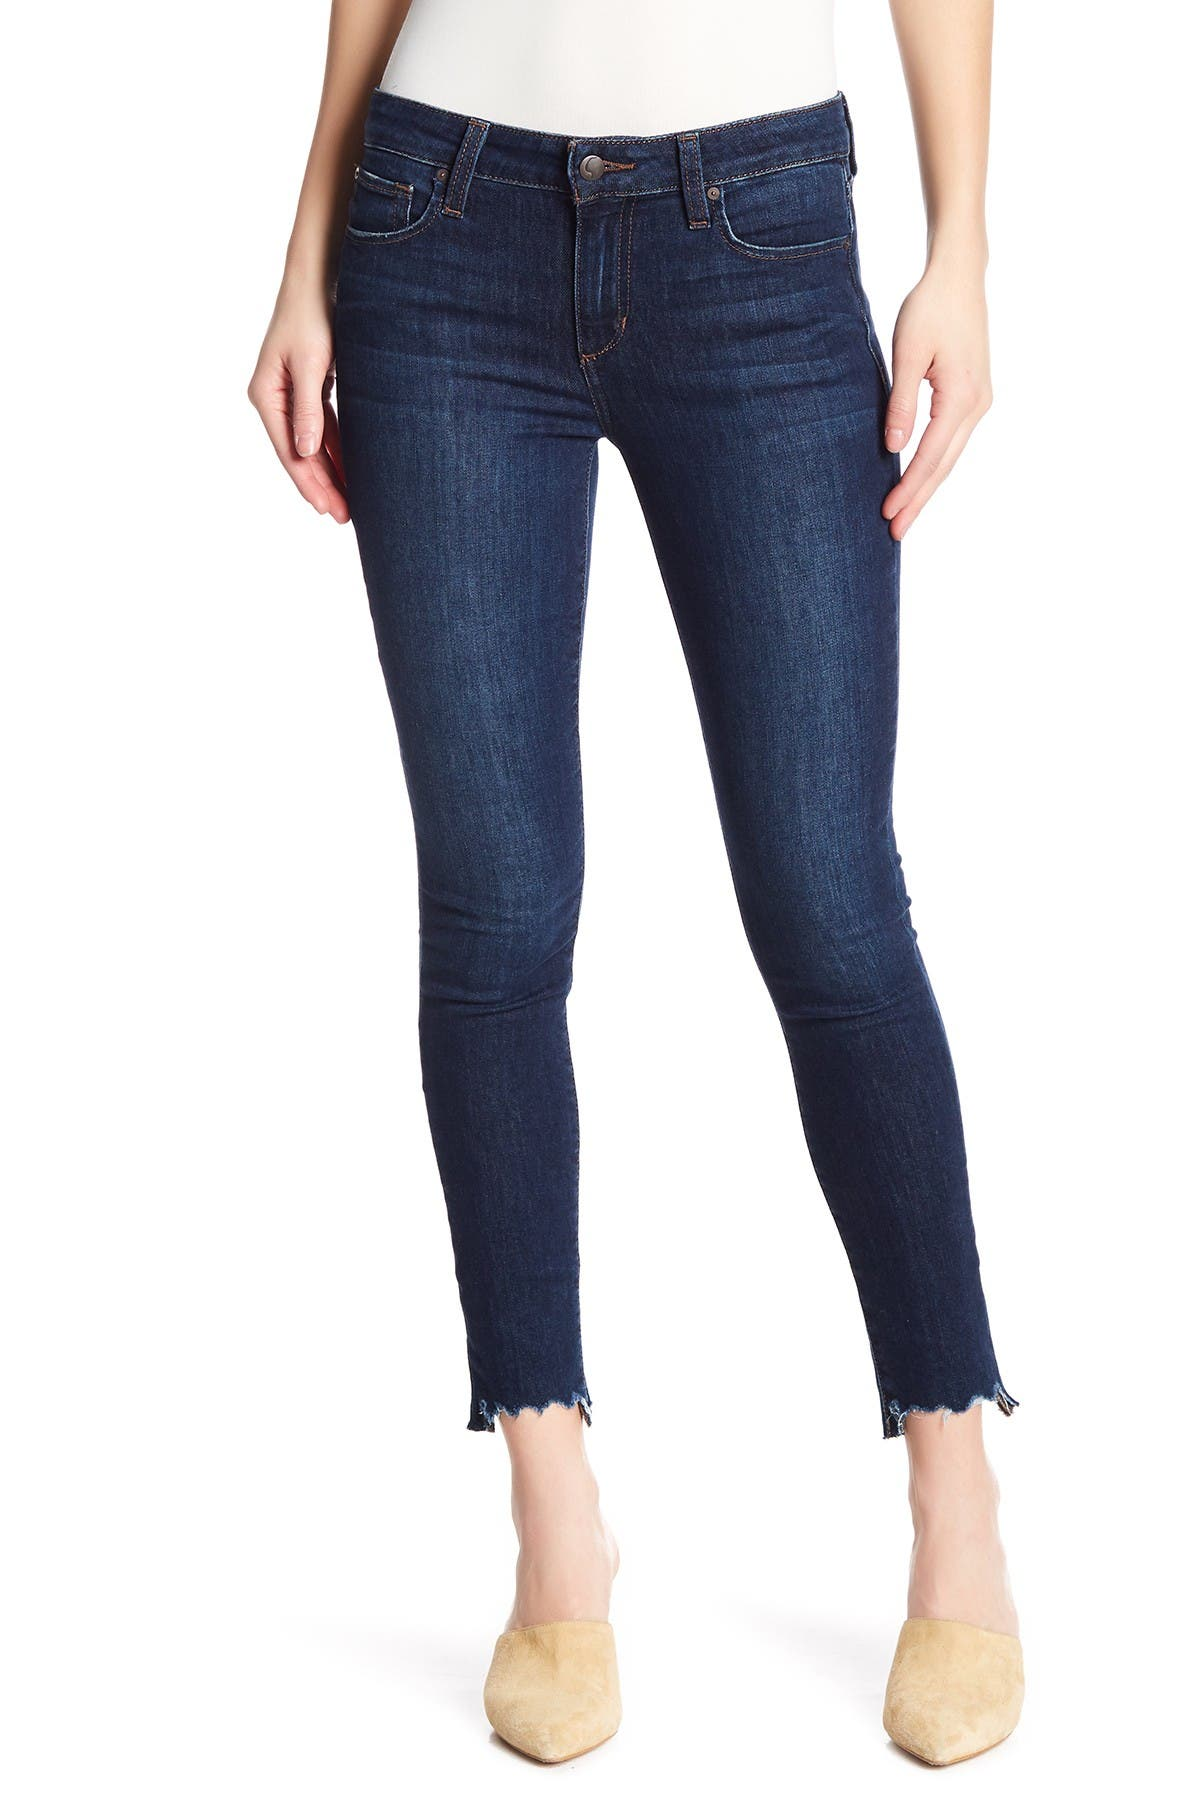 Image of Joe's Jeans Esmerelda Icon Ankle Jeans